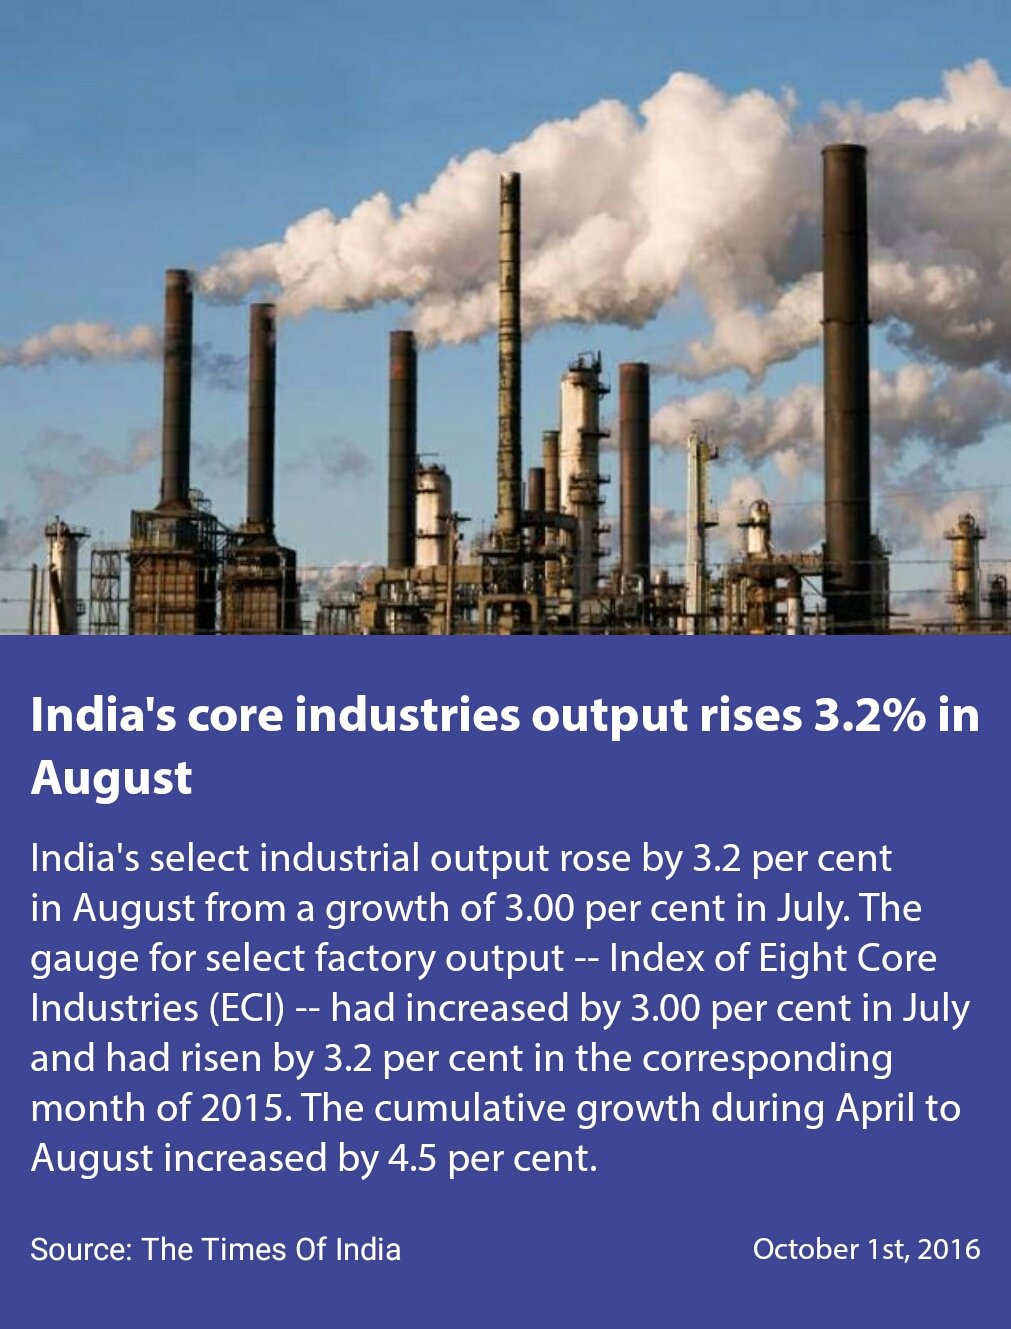 #TransformingIndia  India's core industries output rises 3.2% in August https://t.co/pdLbhDZ6Ol https://t.co/nMKsPZGDIV